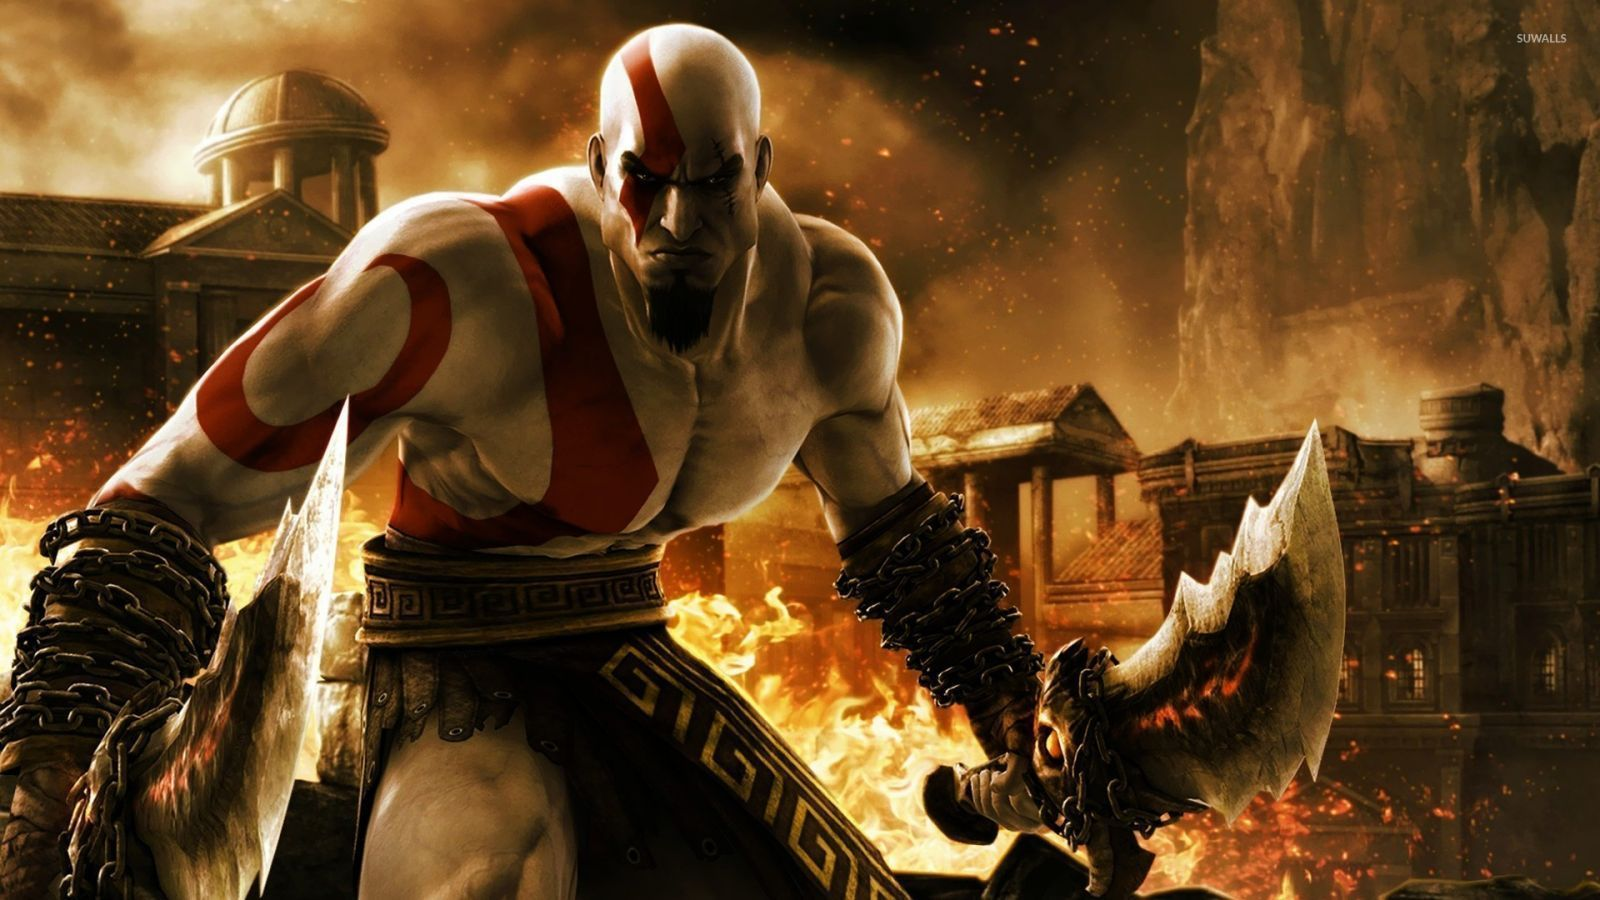 God Of War 3 Kratos Wallpaper For Iphone Number 80b